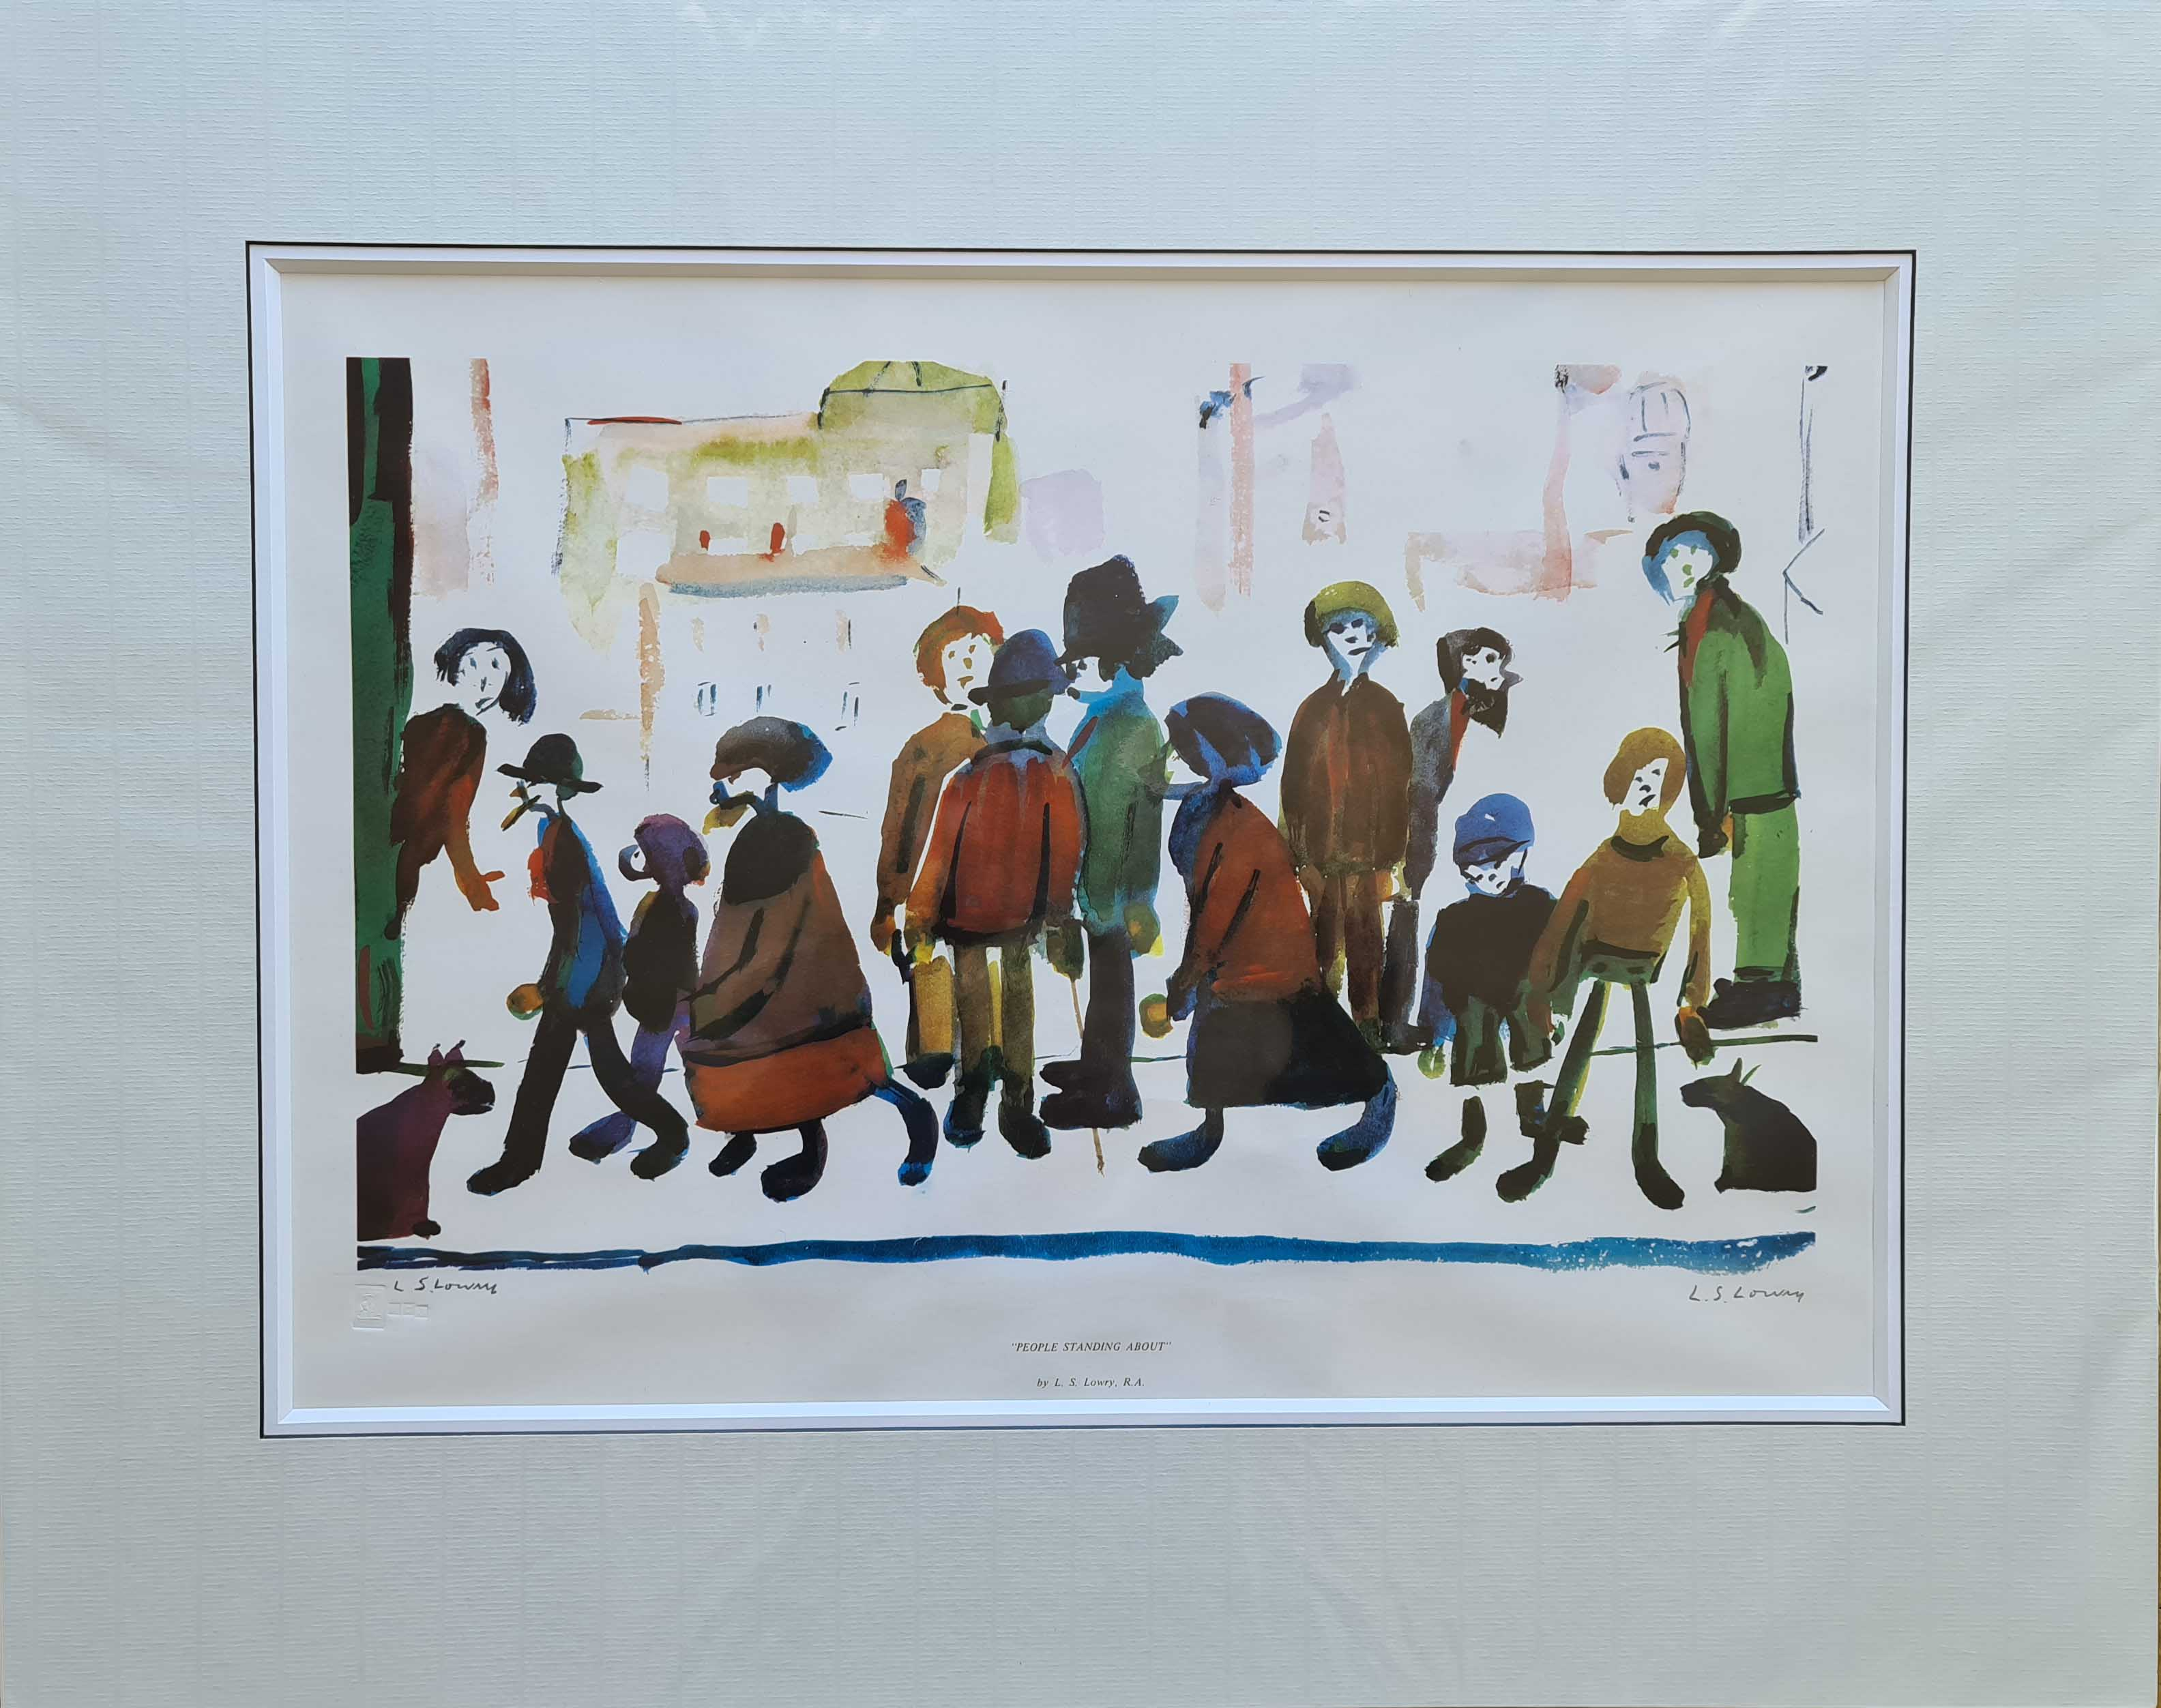 lowry, people standing about, signed print lslowry